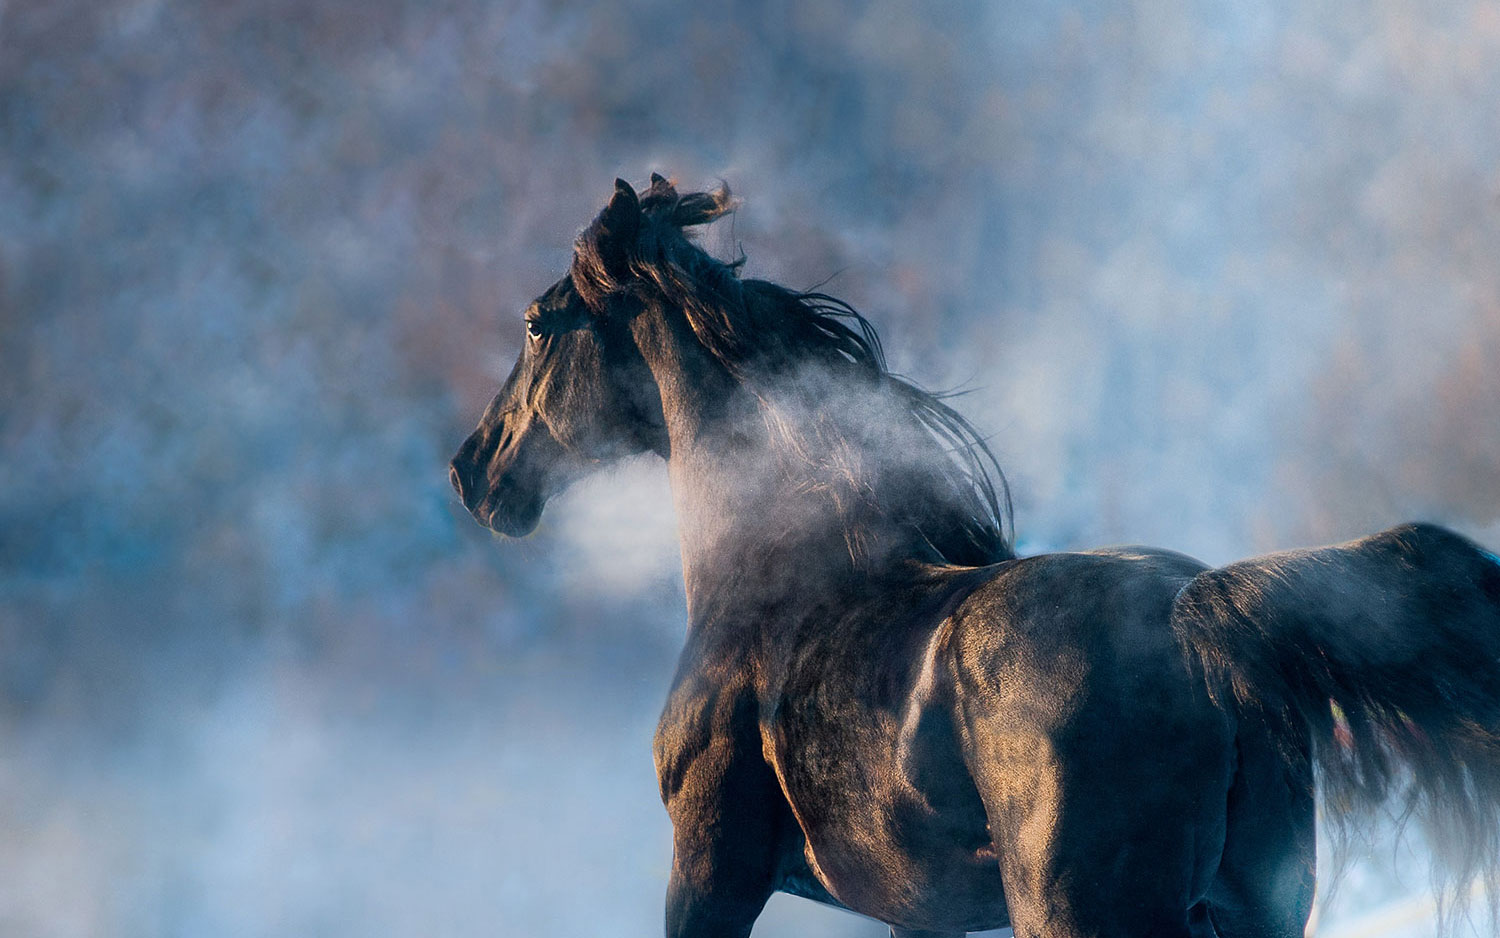 lone horse in mist